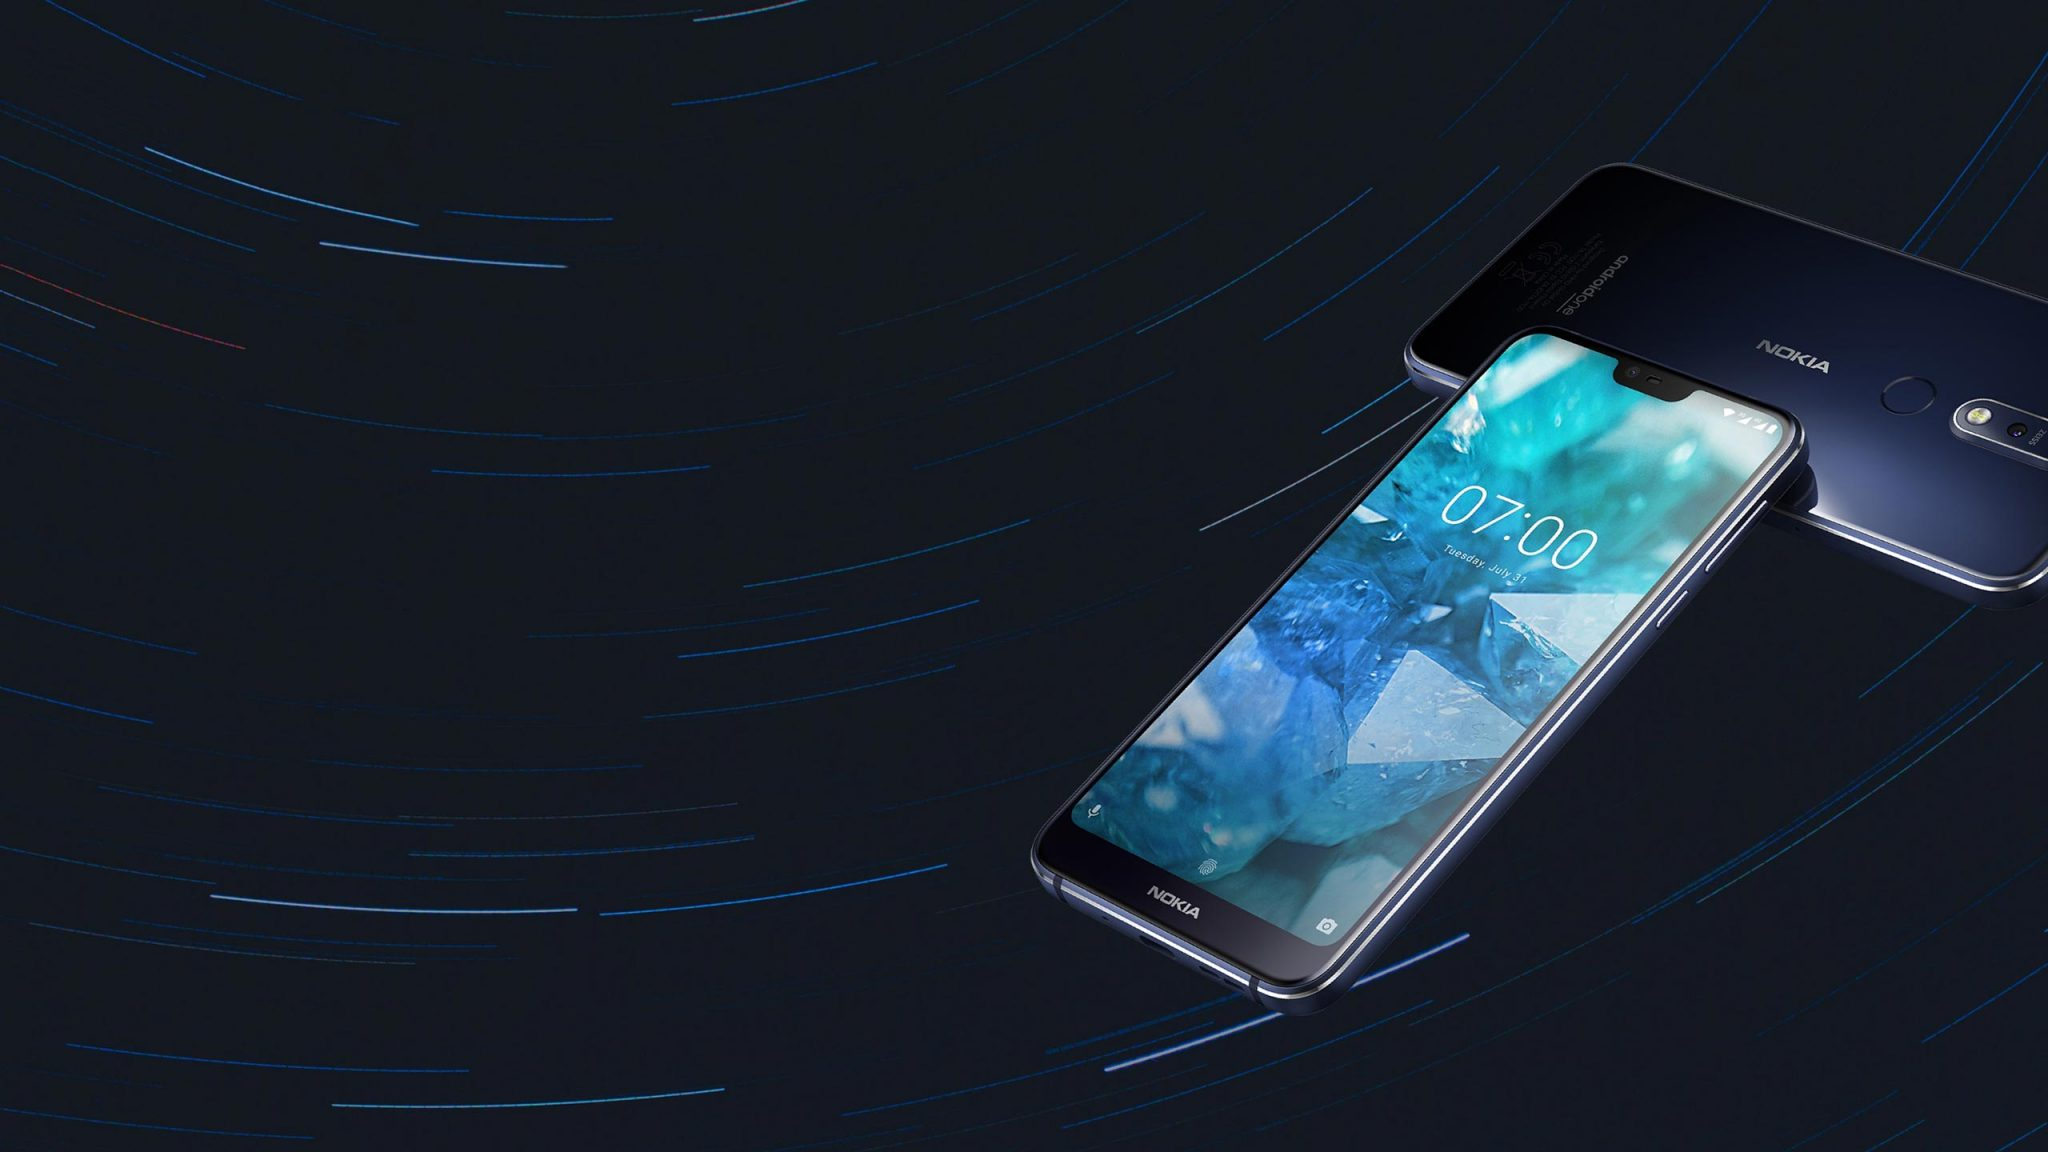 Nokia 7.1 with 19:9 display and dual cameras announced 1